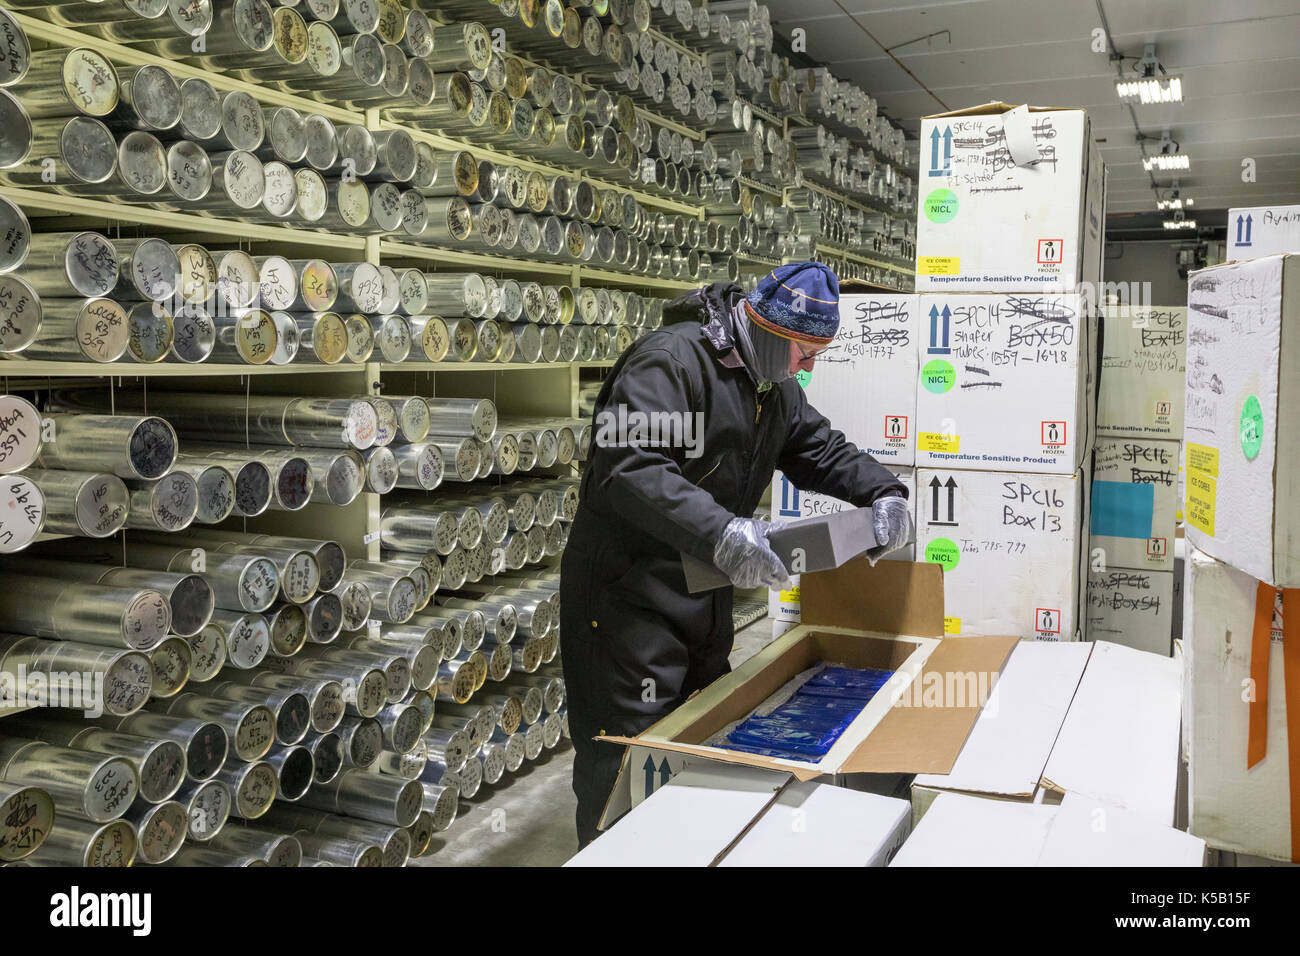 Denver, Colorado - Geoff Hargreaves, curator at the National Ice Core Laboratory, places insulation in a box of ice cores being shipped to a scientist - Stock Image